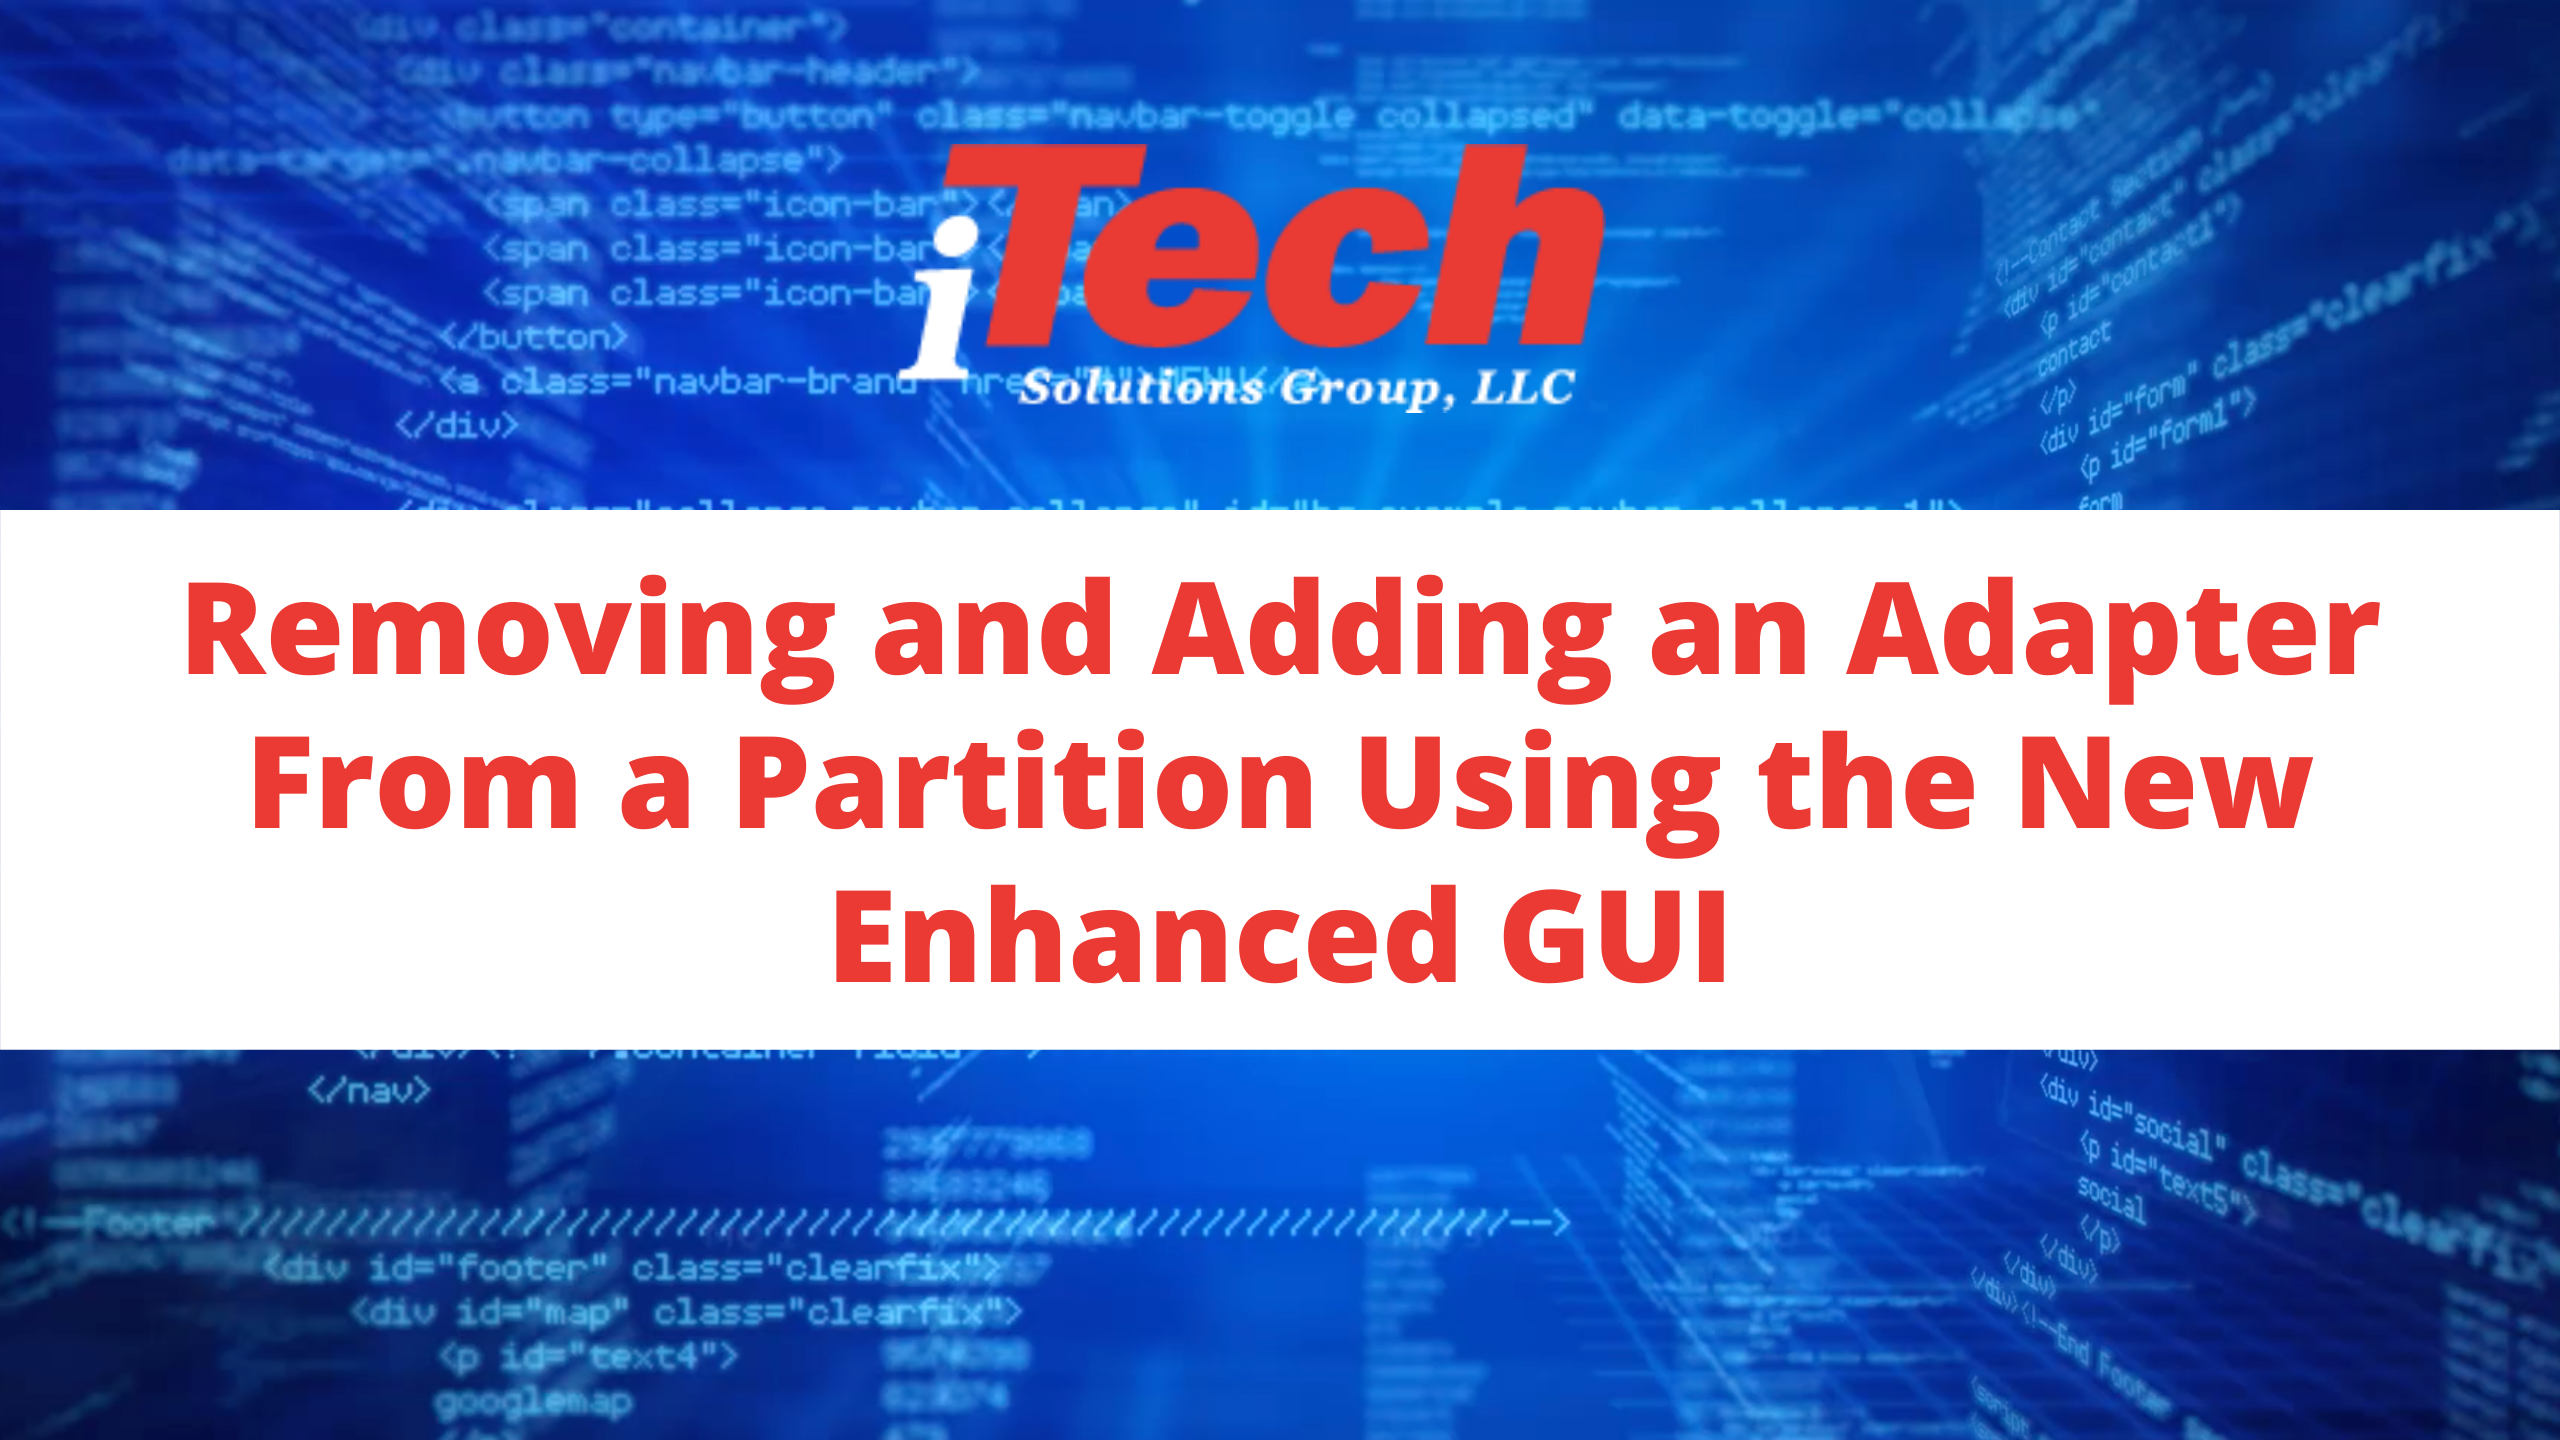 Removing and Adding an Adapter From a Partition Using the New Enhanced GUI (1)